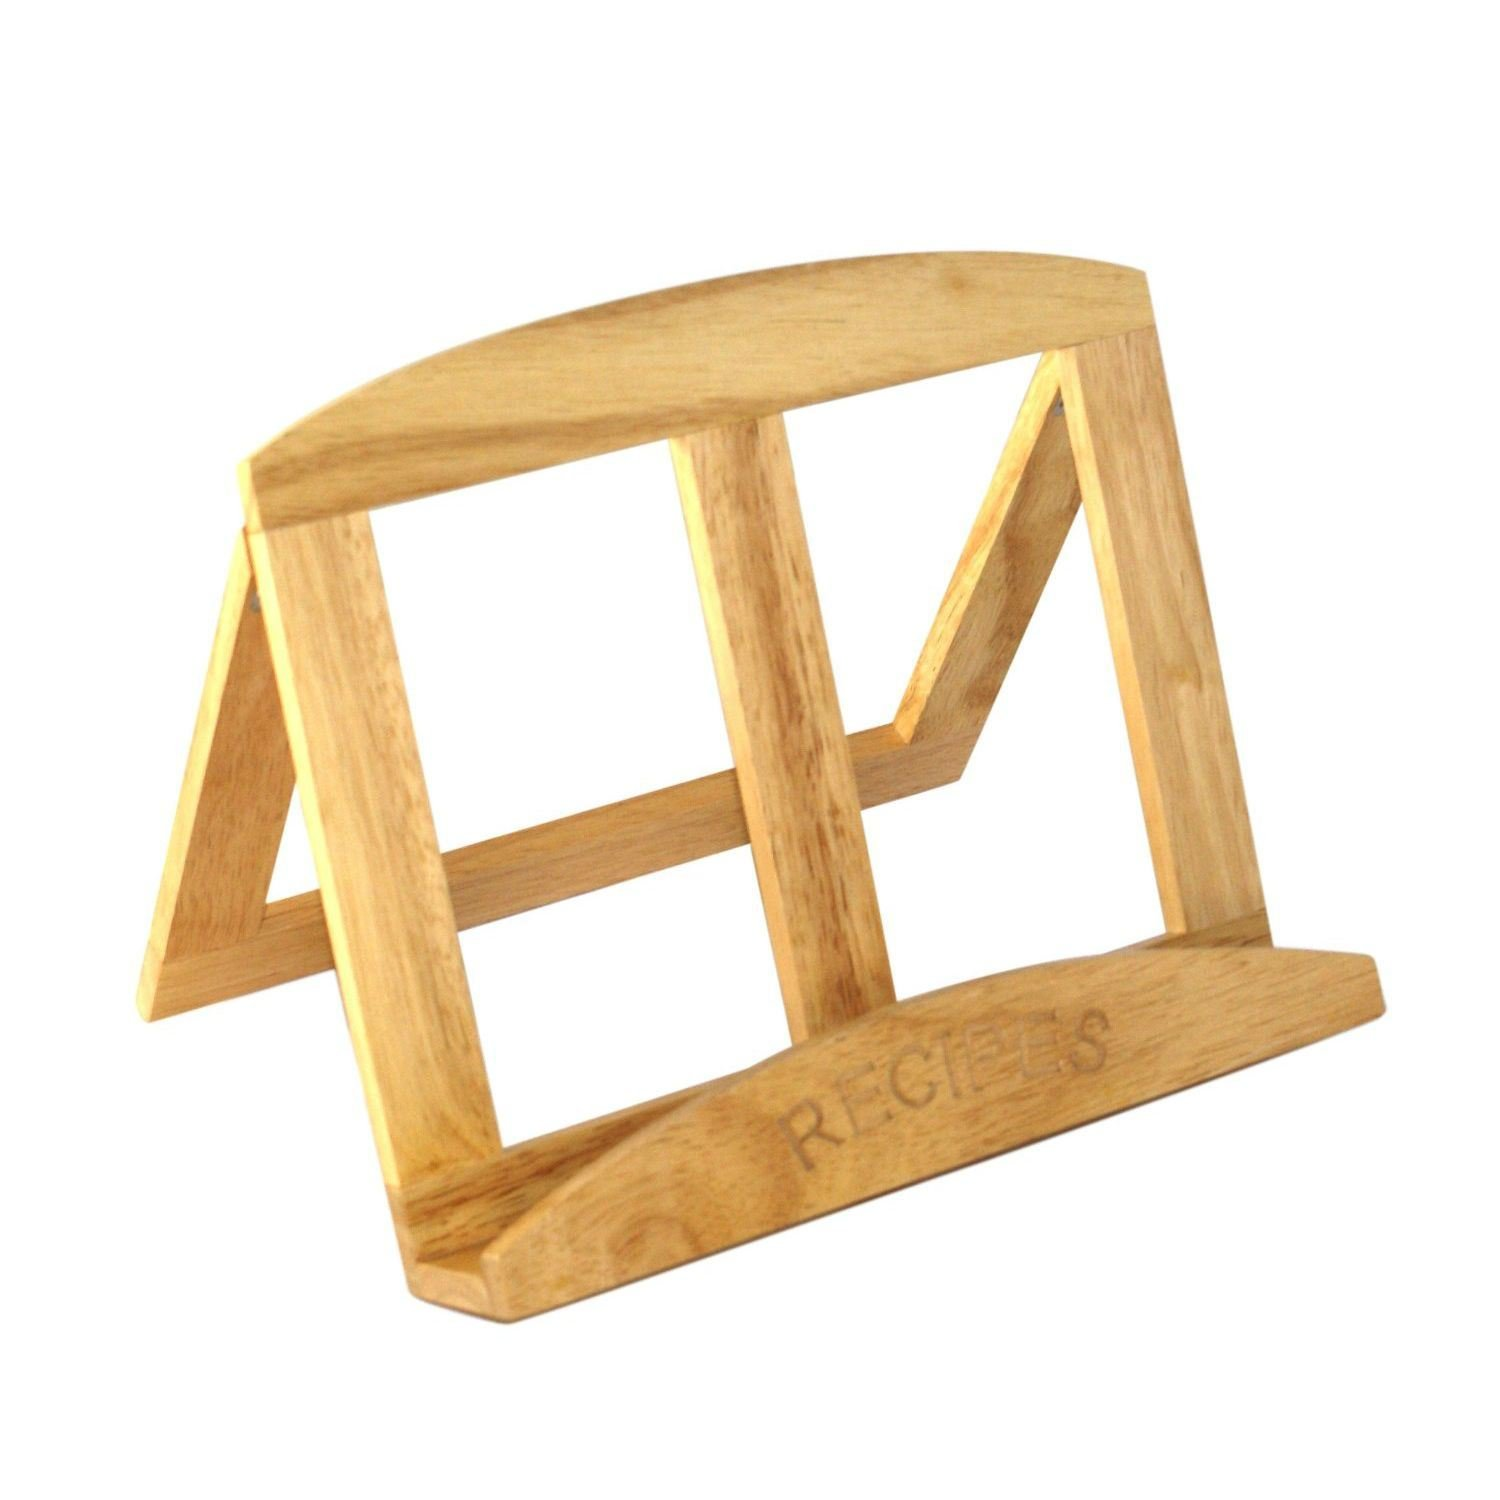 Wooden Cookbook Stand (Pack of 4) by Zodiac